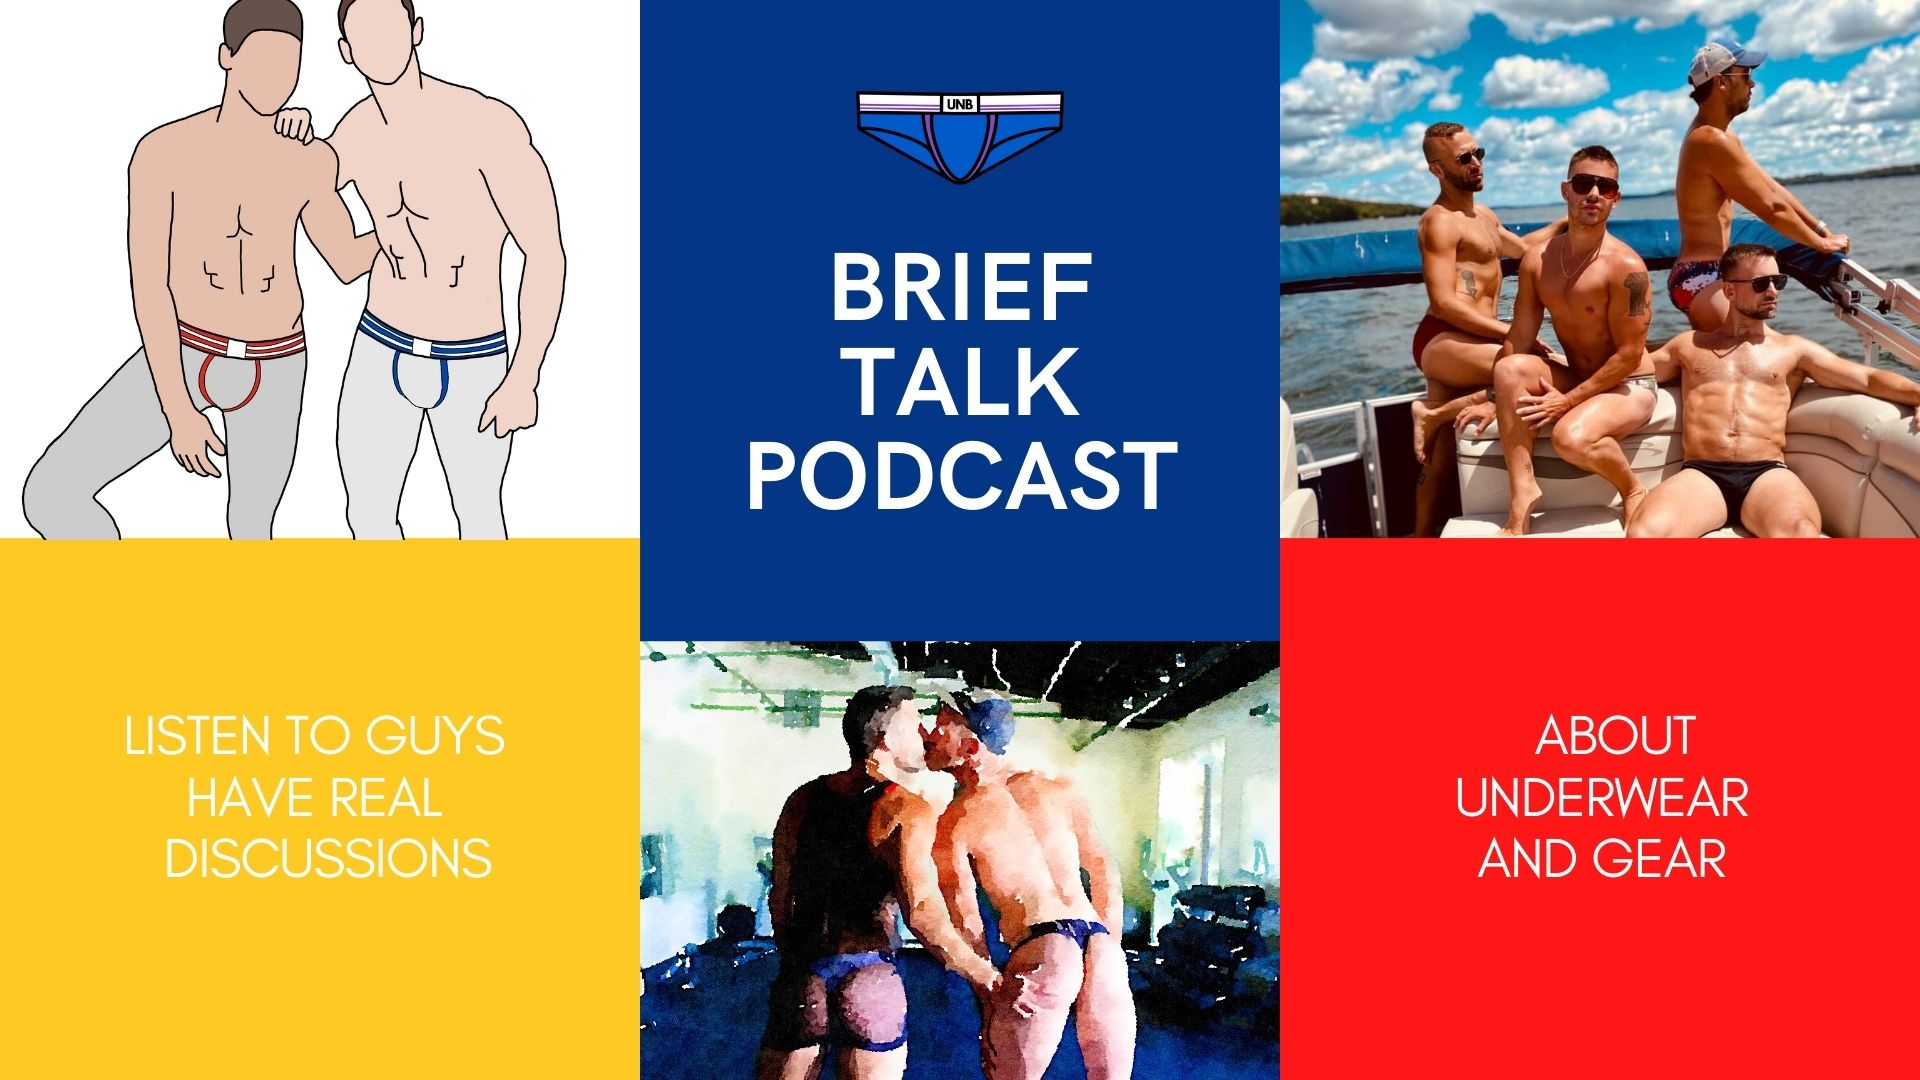 Listen to the UNB Podcast - Brief Talk